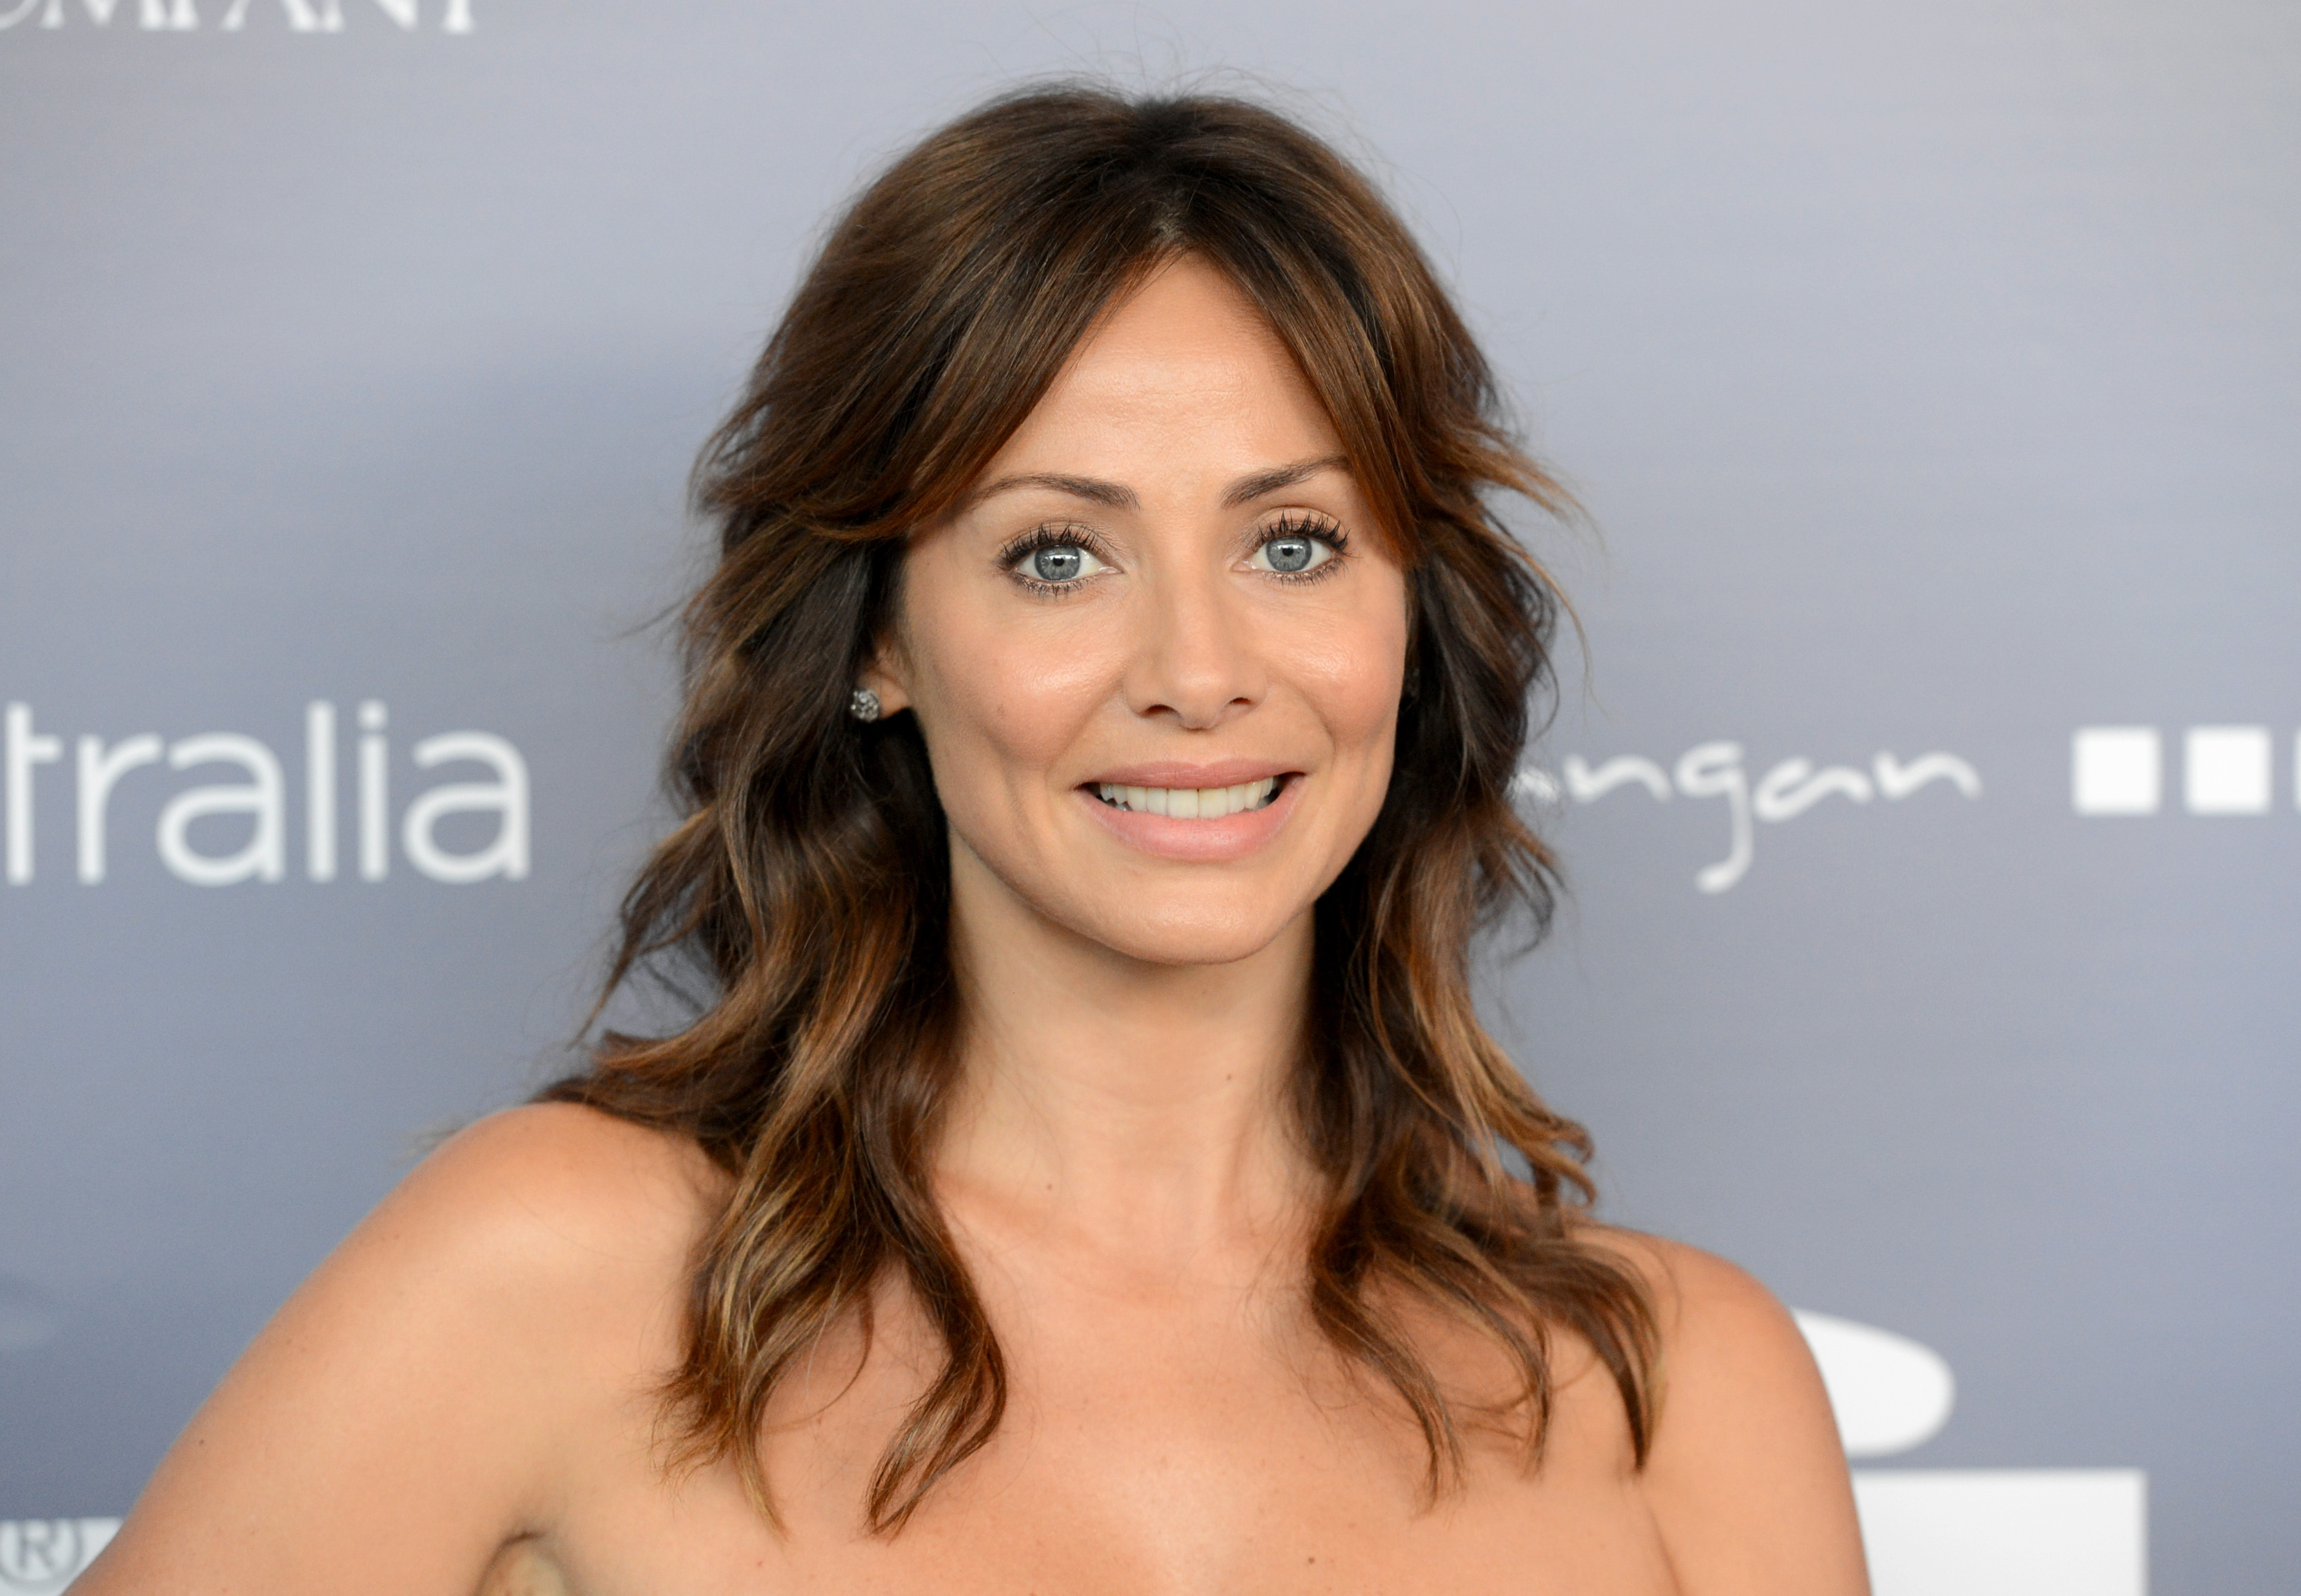 Images Natalie Imbruglia nudes (44 foto and video), Topless, Leaked, Boobs, braless 2019